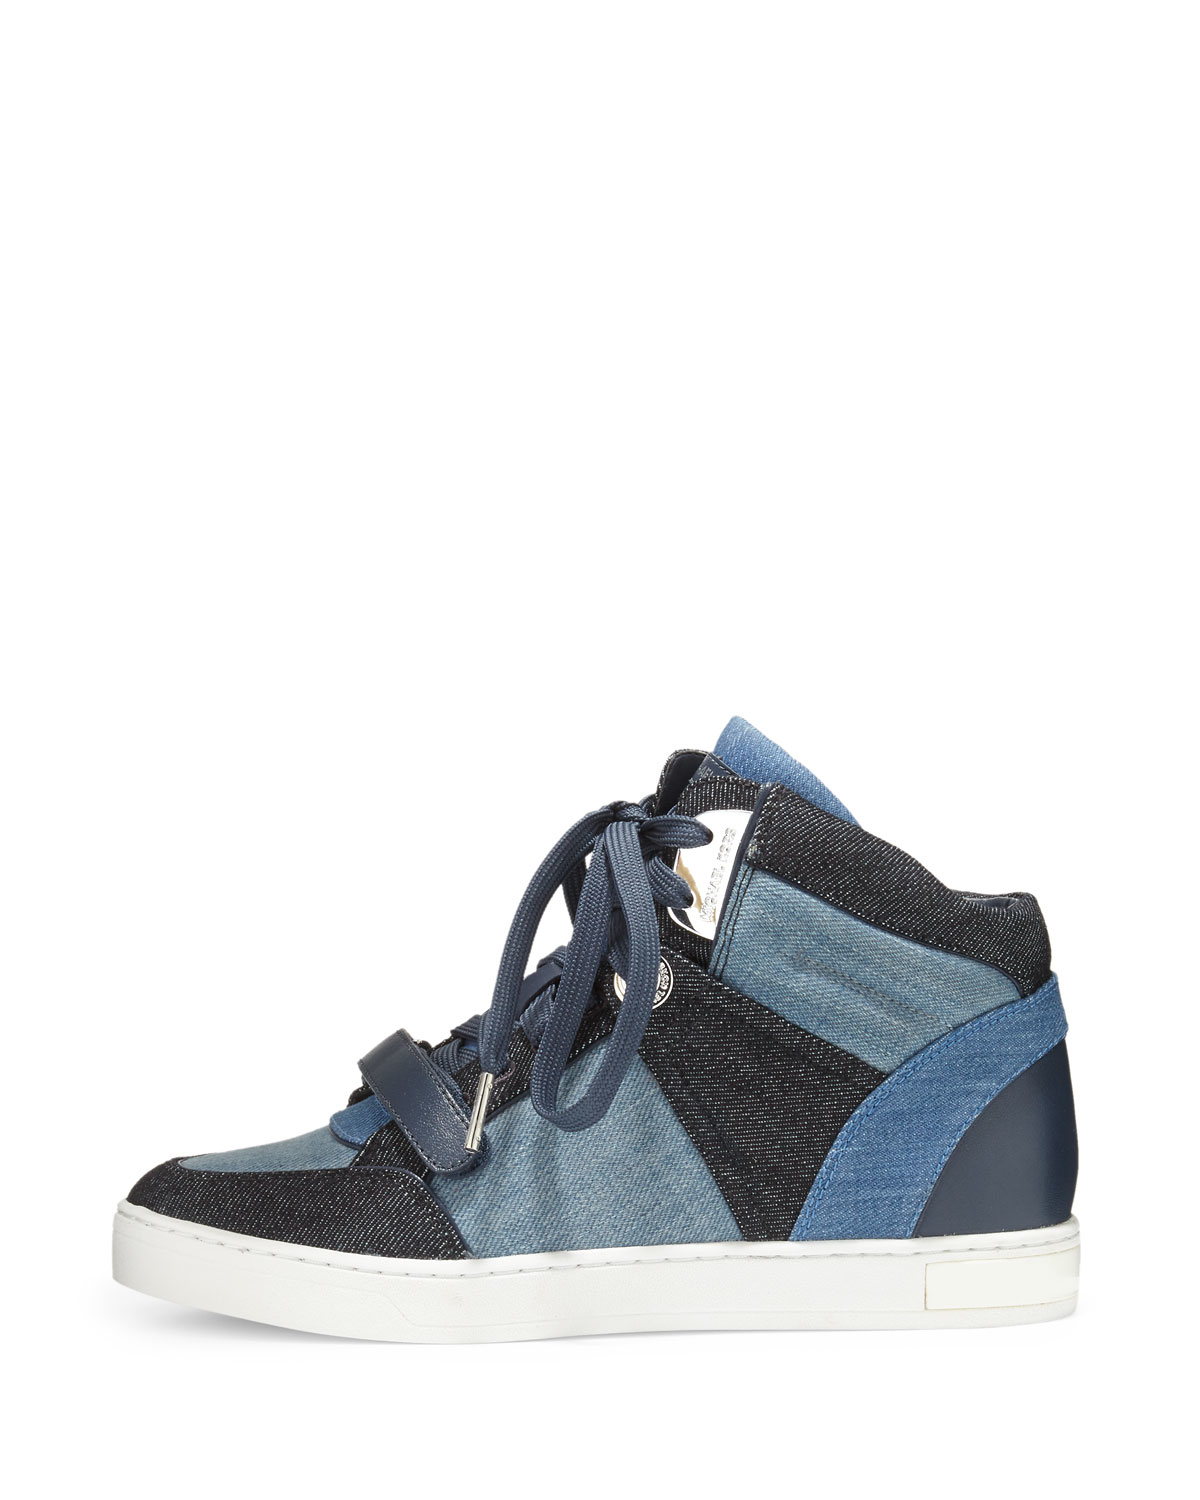 28ed32bca70a7 Gallery. Previously sold at  Neiman Marcus · Women s Indigo Sneakers ...